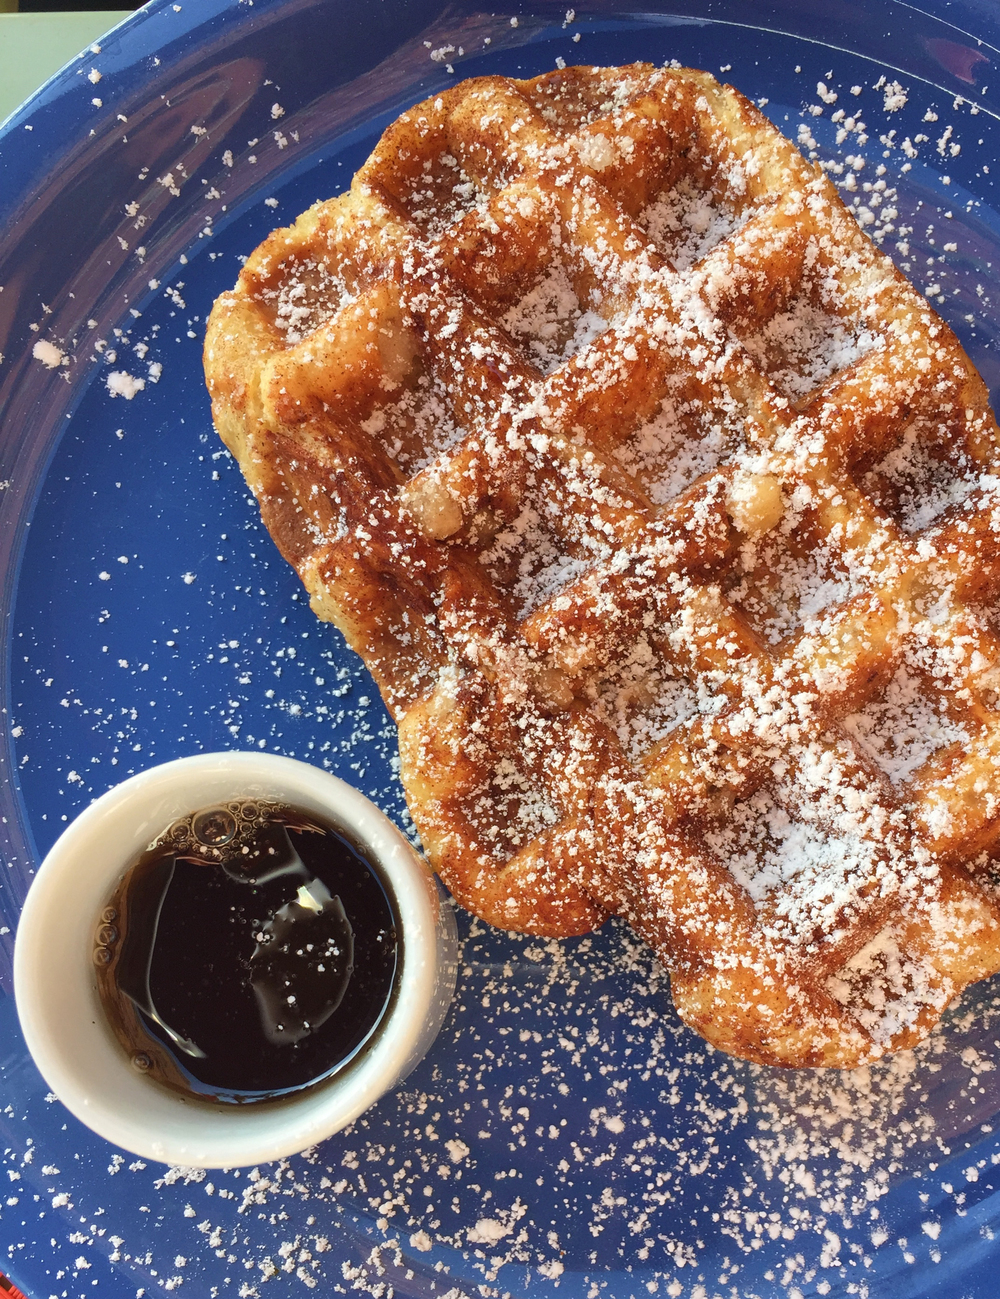 Traditional Liege Waffle coated with Belgium Pearl Sugar and dusted with powdered sugar.